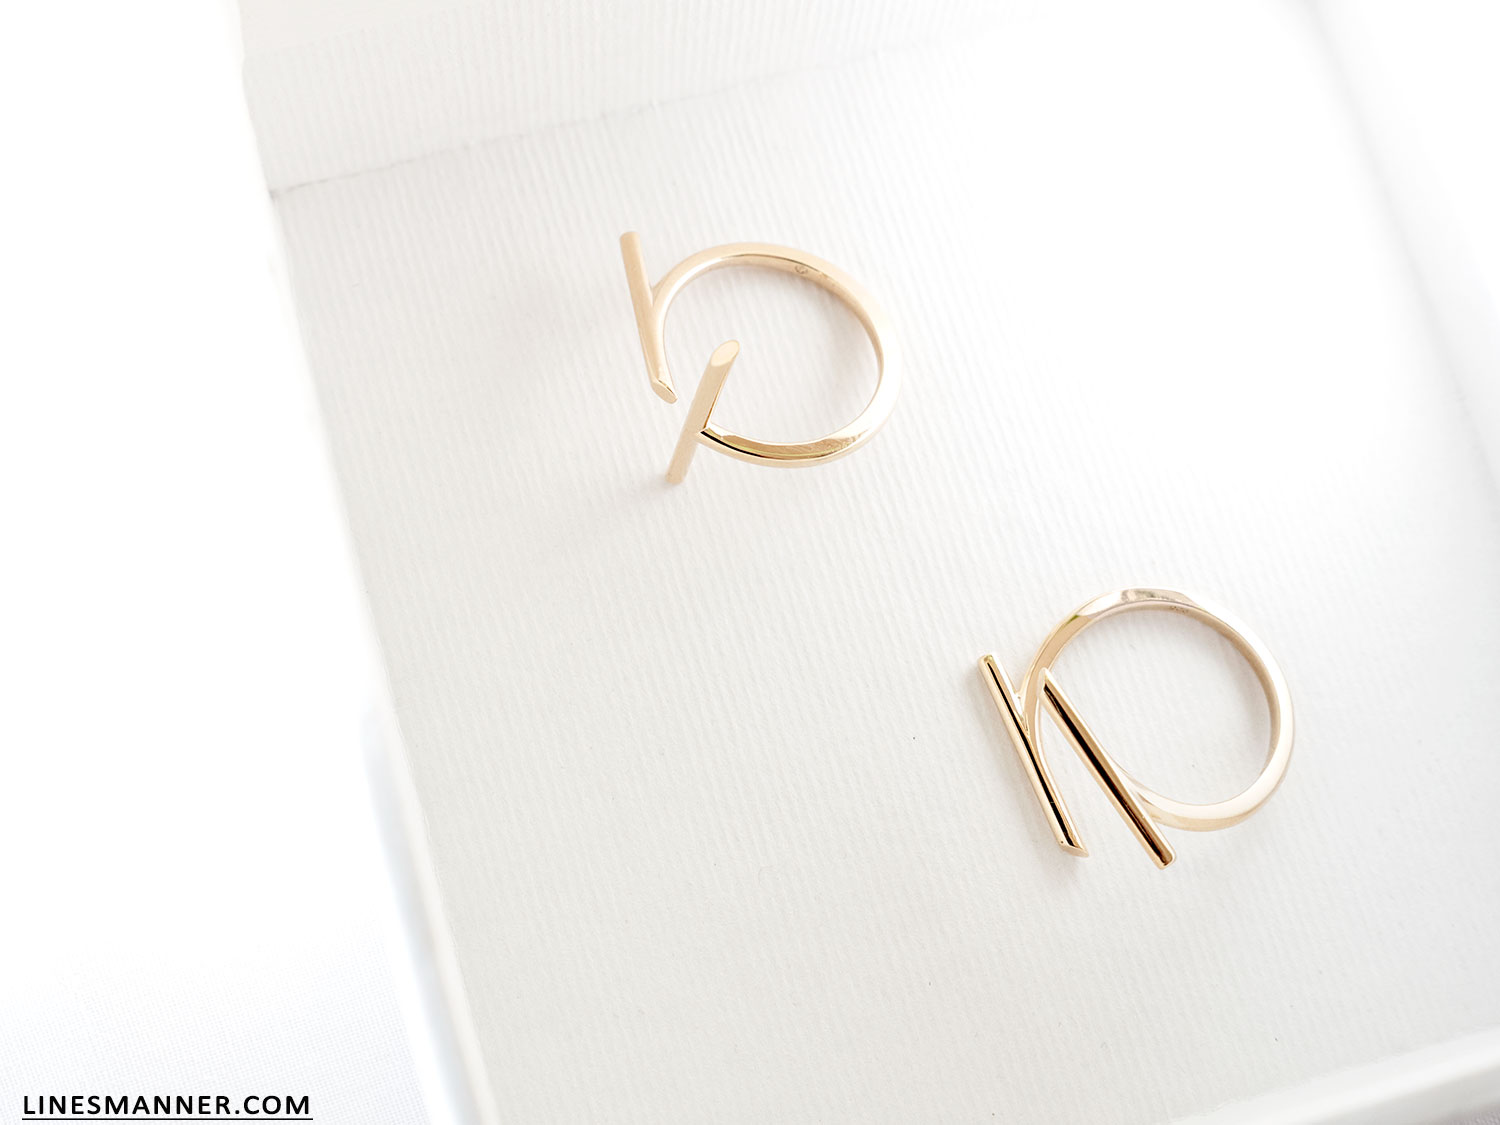 Lines-Manner-Bloglovin-Mejuri-Collaboration-Contest-Minimalism-Edge-NYC-Scandinavian-Pure_and_Simple-Essentials-Details-Gold-Vermeil-Jewelry-Rings-Earrings-White-Whiteout-Subtil-Linear-Geometric-8